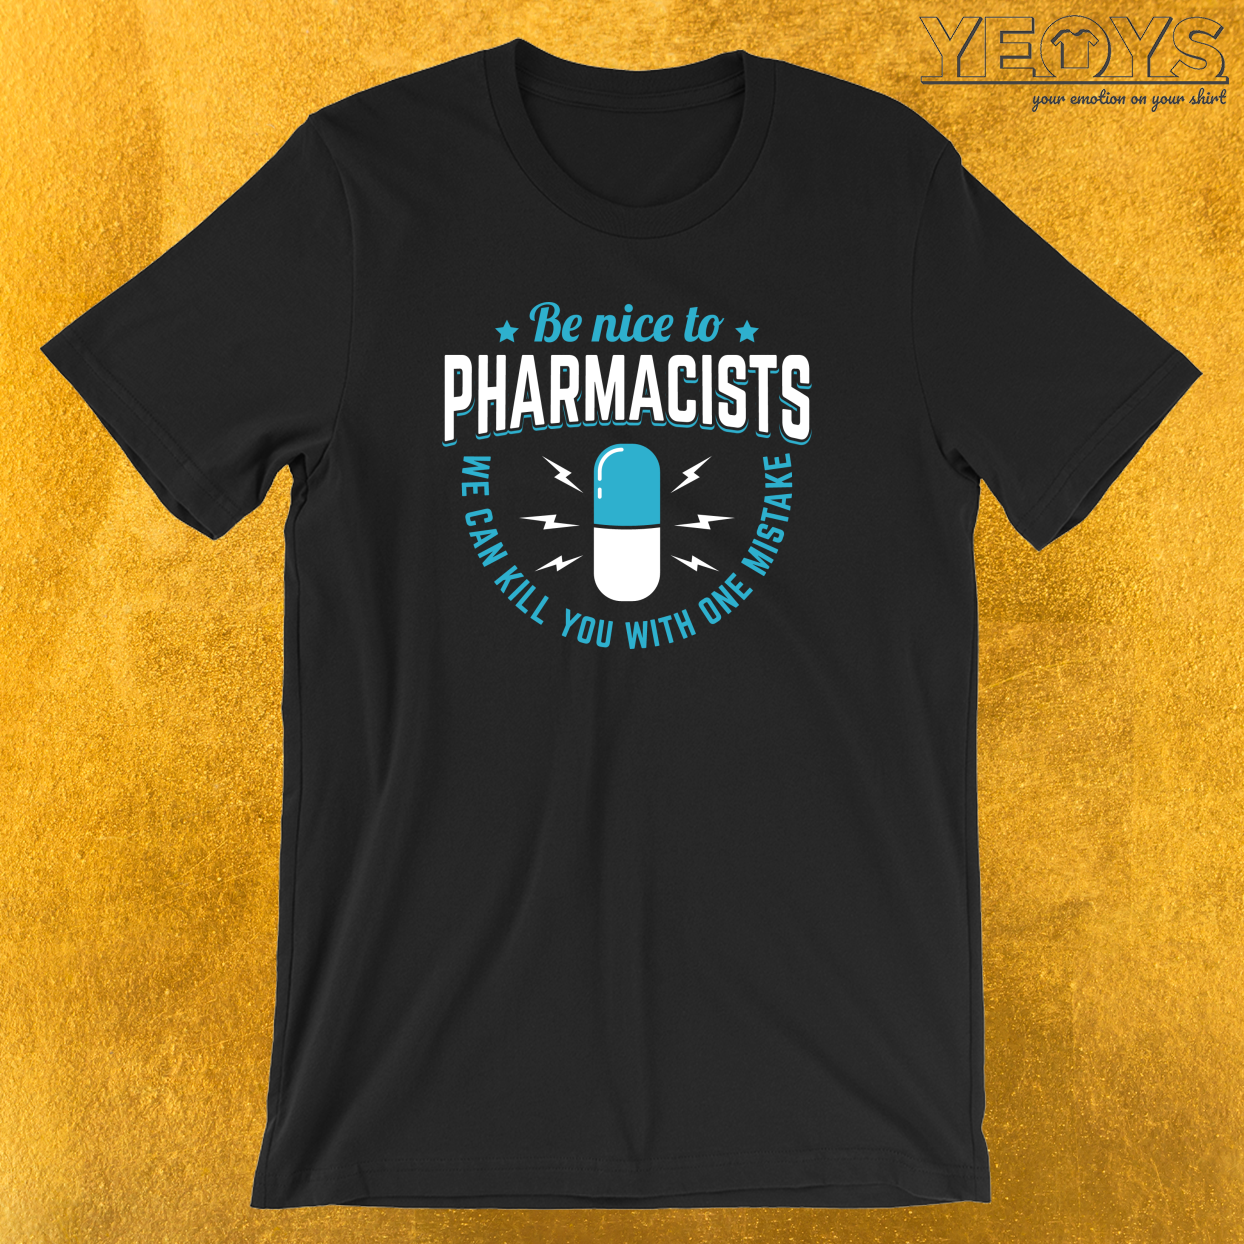 Be Nice To Pharmacists One Mistake T-Shirt